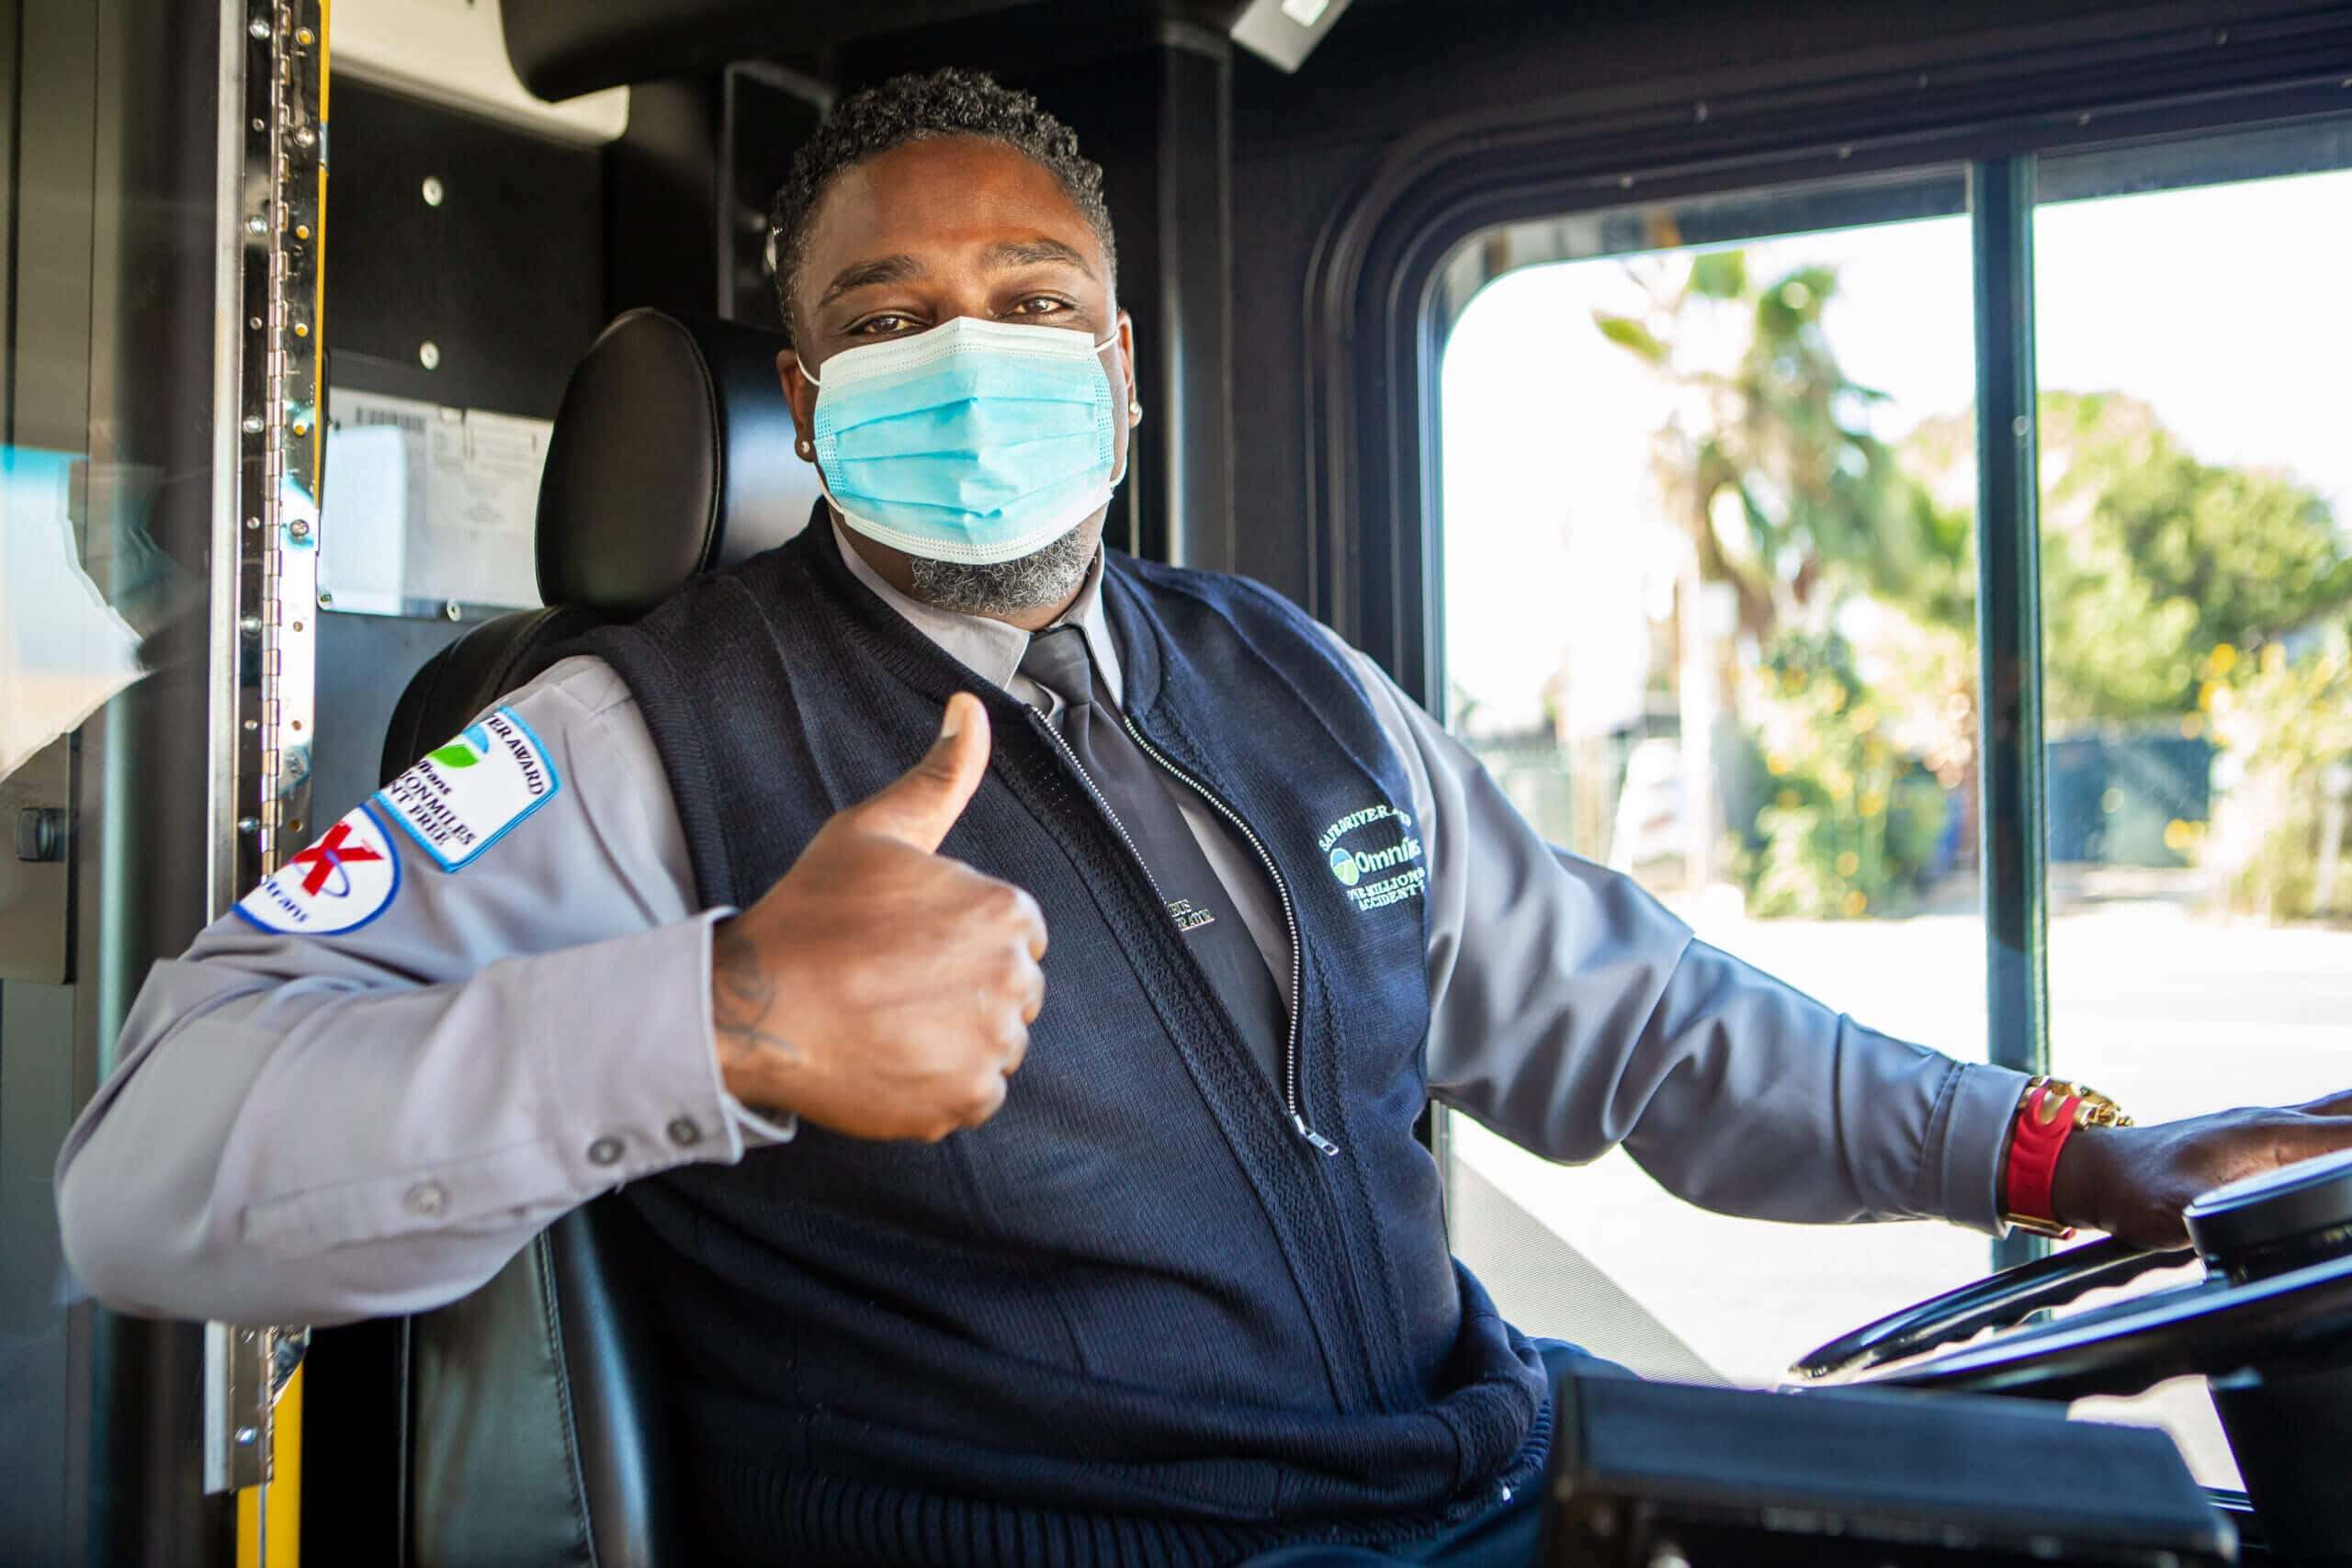 Image of Omnitrans bus driver wearing a mask and giving a thumbs up